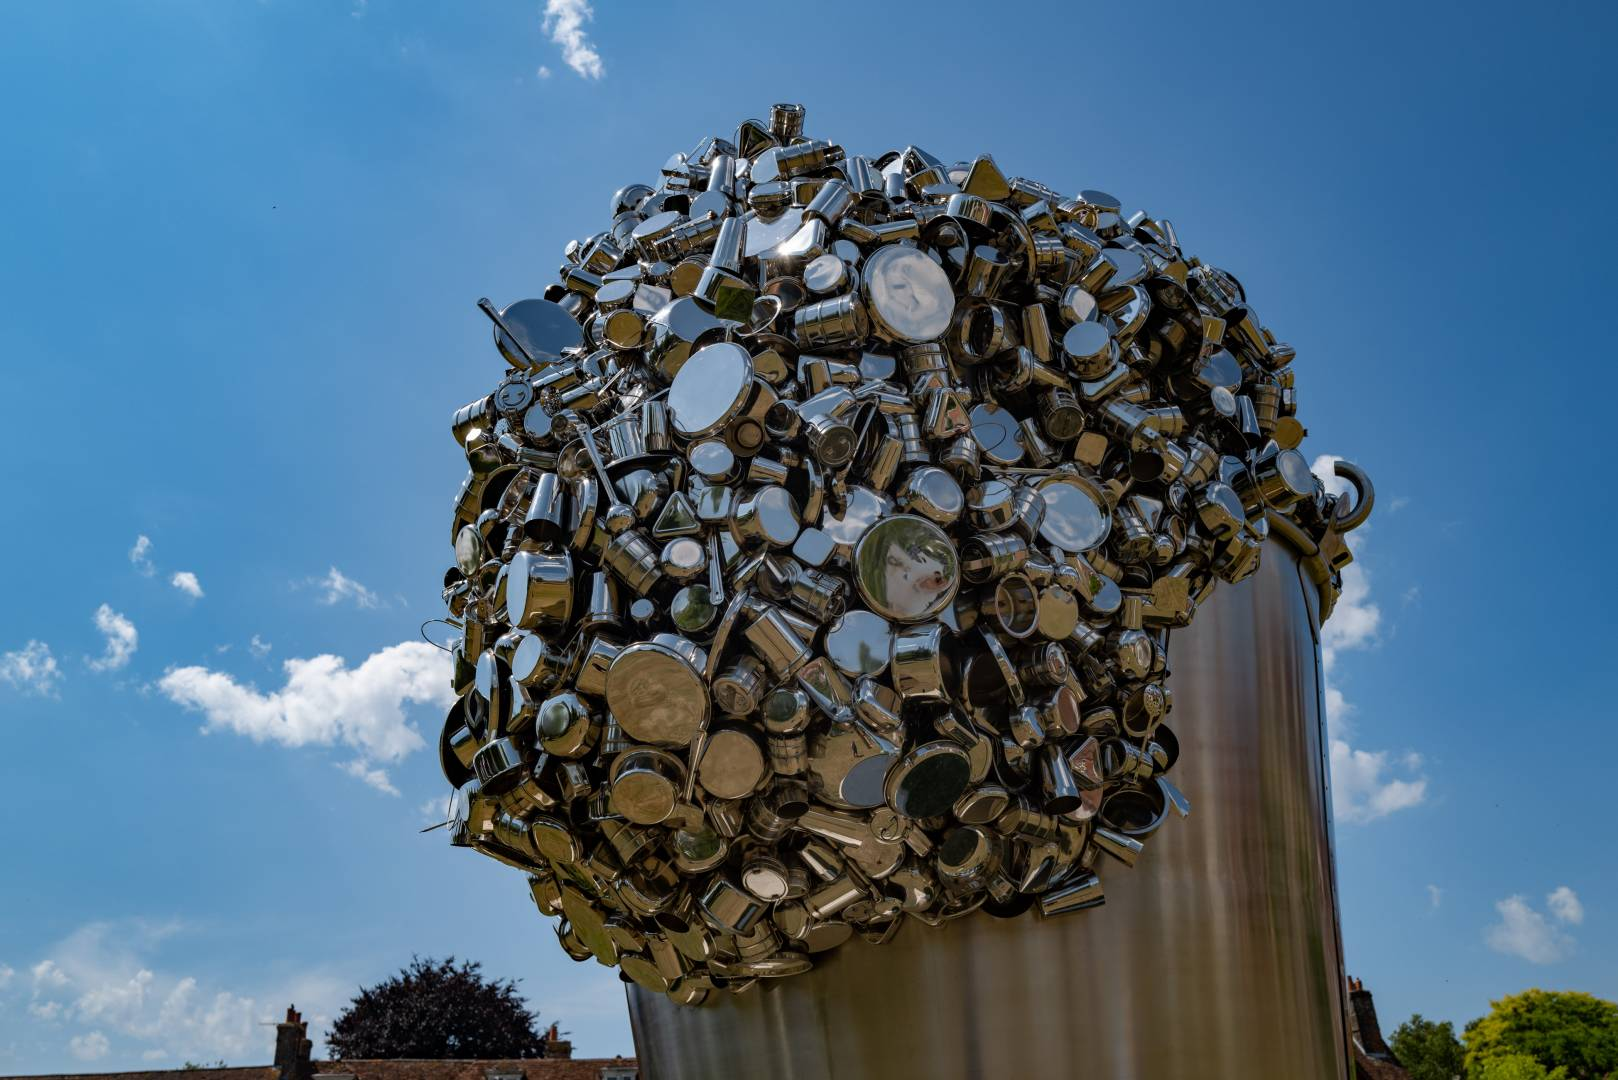 When Soak Becomes Spill by Subodh Gupta, 2008